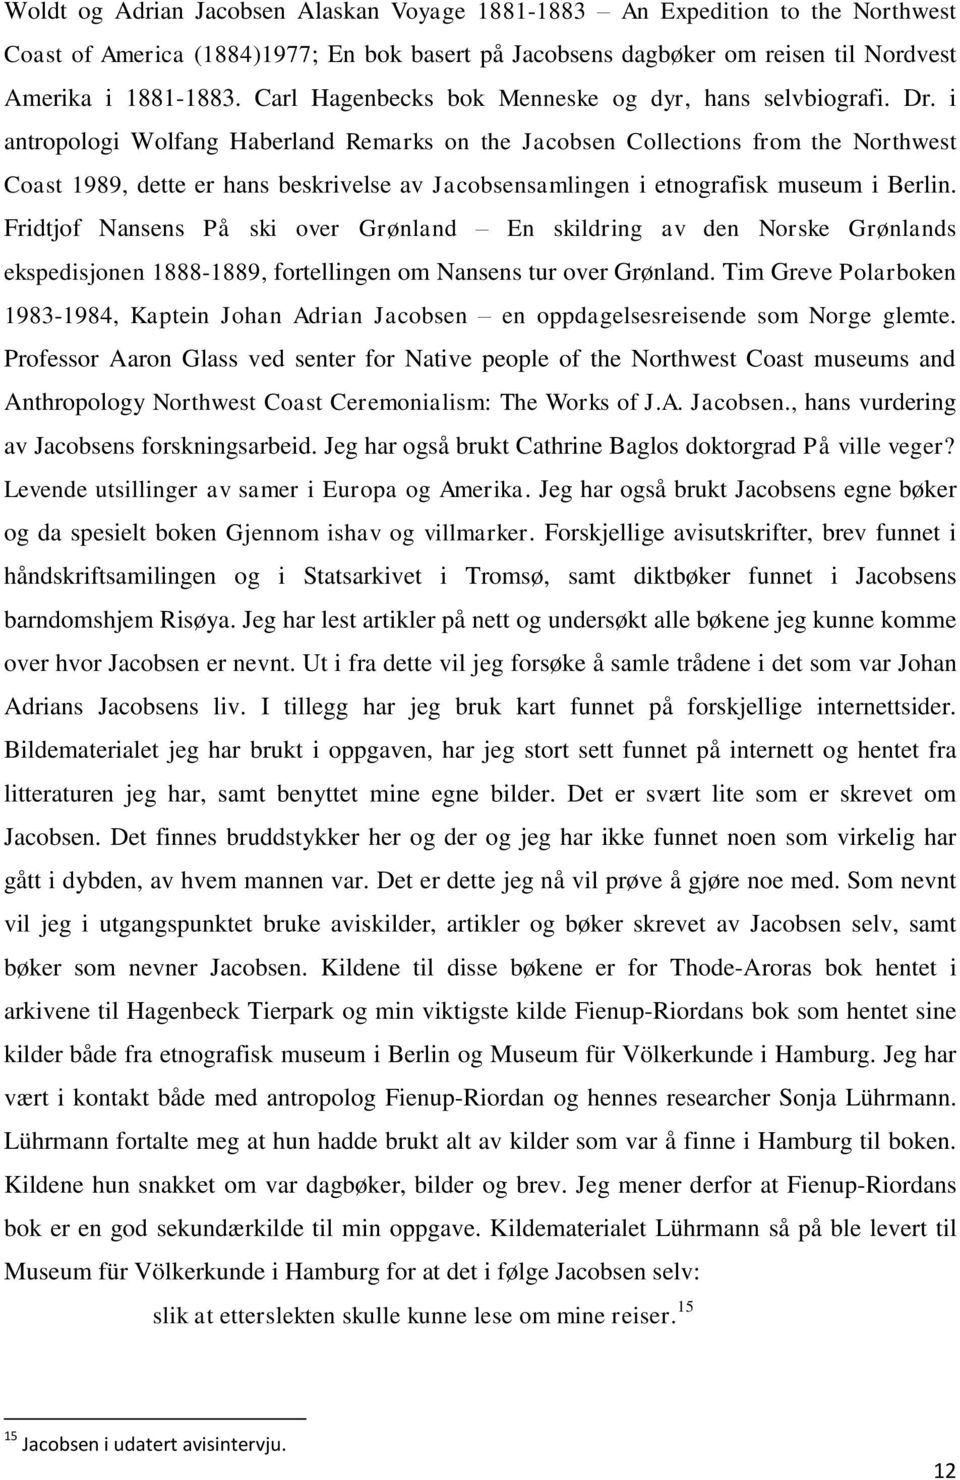 i antropologi Wolfang Haberland Remarks on the Jacobsen Collections from the Northwest Coast 1989, dette er hans beskrivelse av Jacobsensamlingen i etnografisk museum i Berlin.